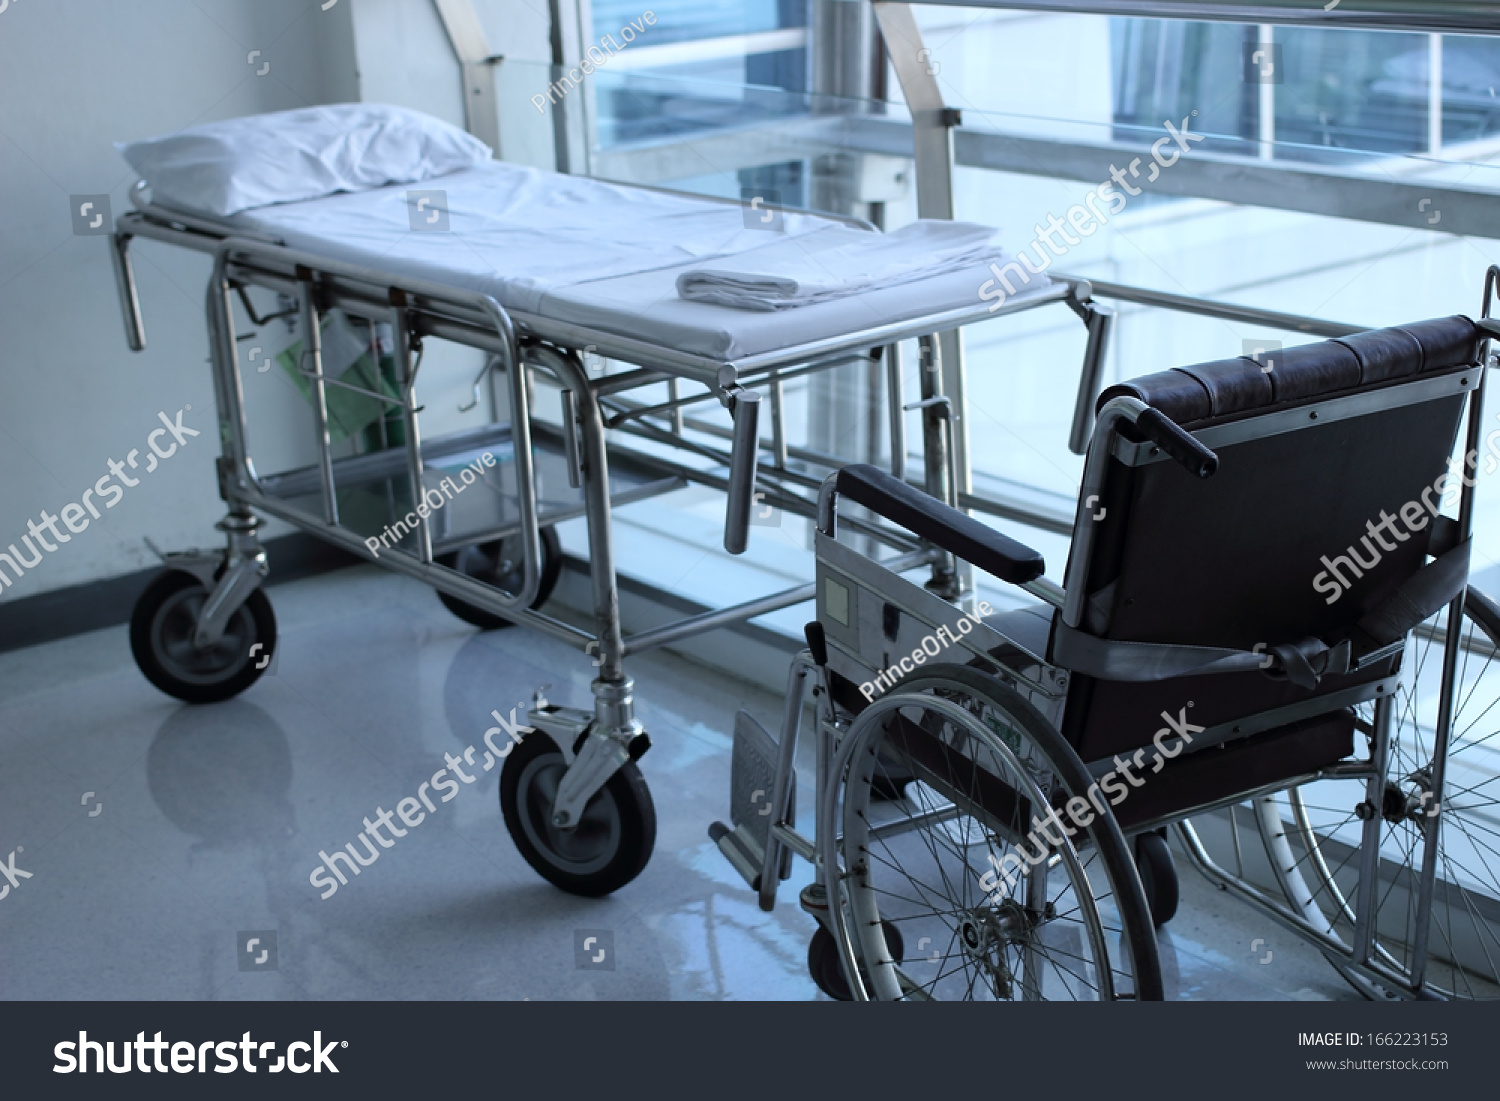 wheelchair wheel bed patient stock photo 166223153 - shutterstock